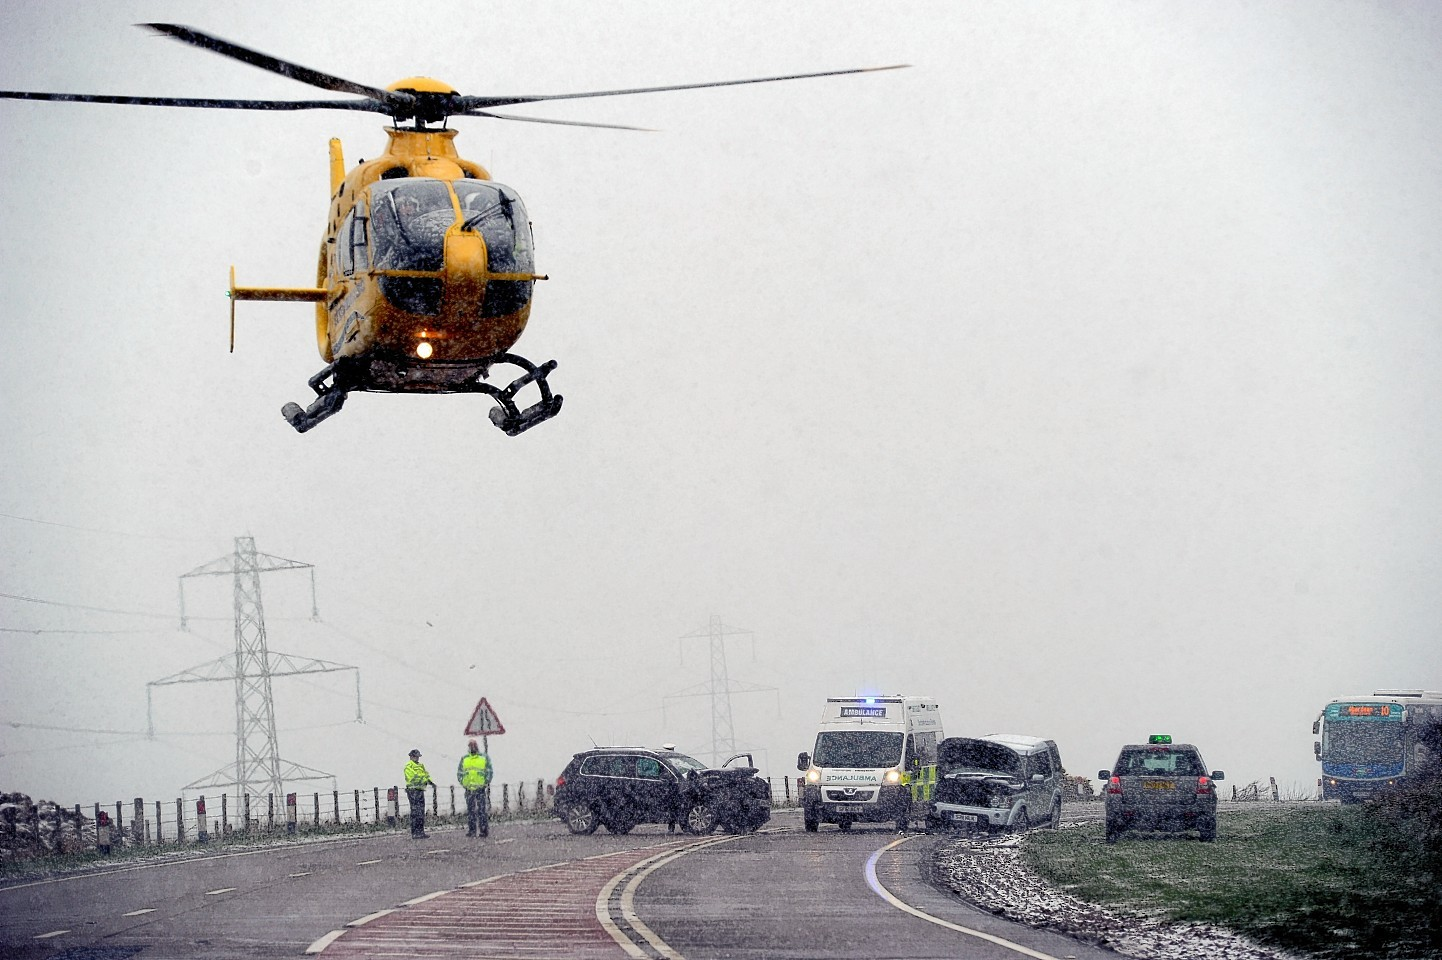 The air ambulance approaches the crash. Picture by Kenny Elrick.